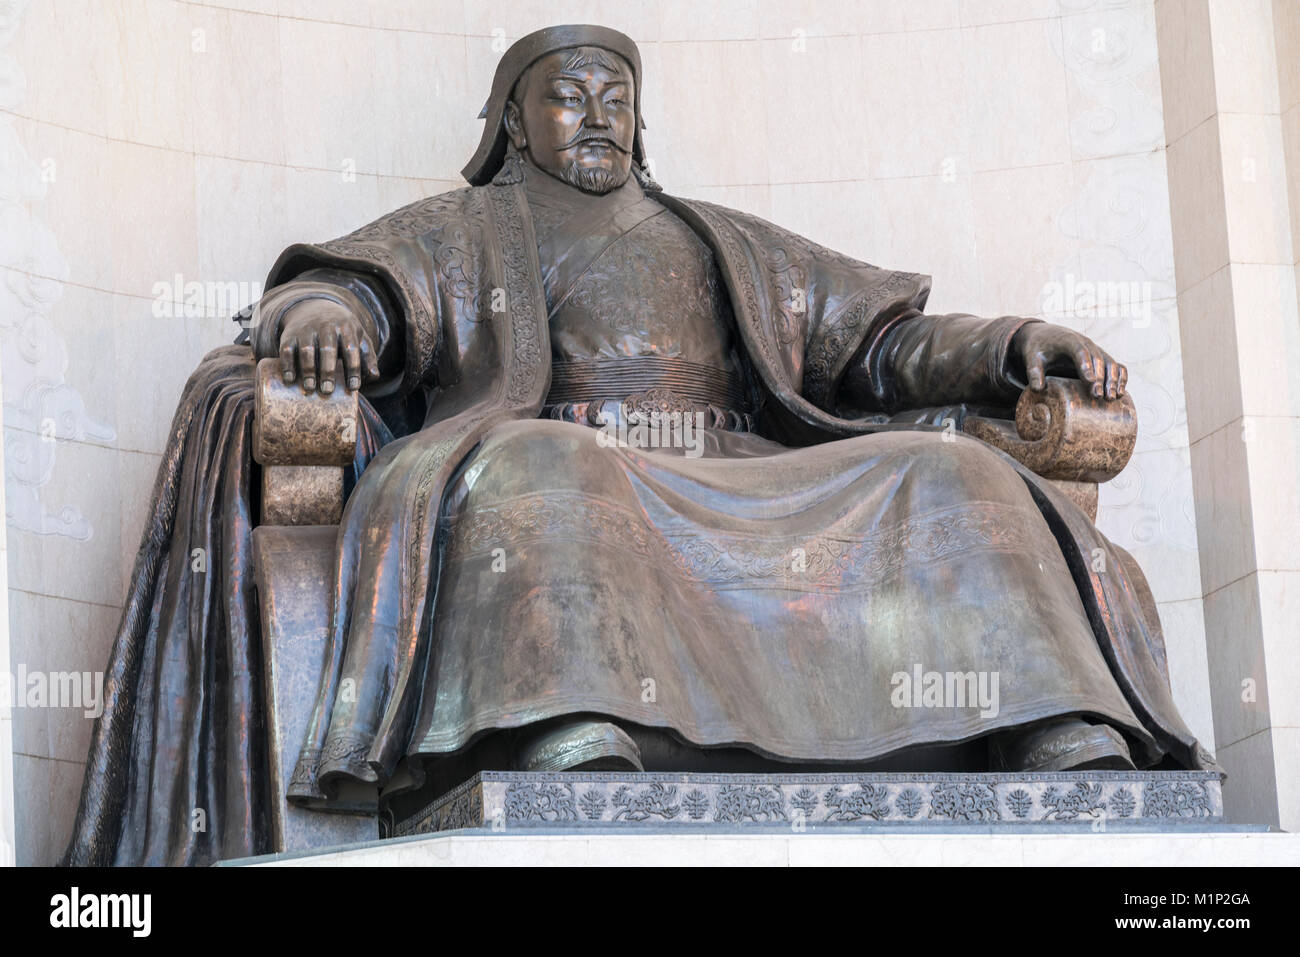 Genghis Khan statue at the Government Palace, Ulan Bator, Mongolia, Central Asia, Asia - Stock Image